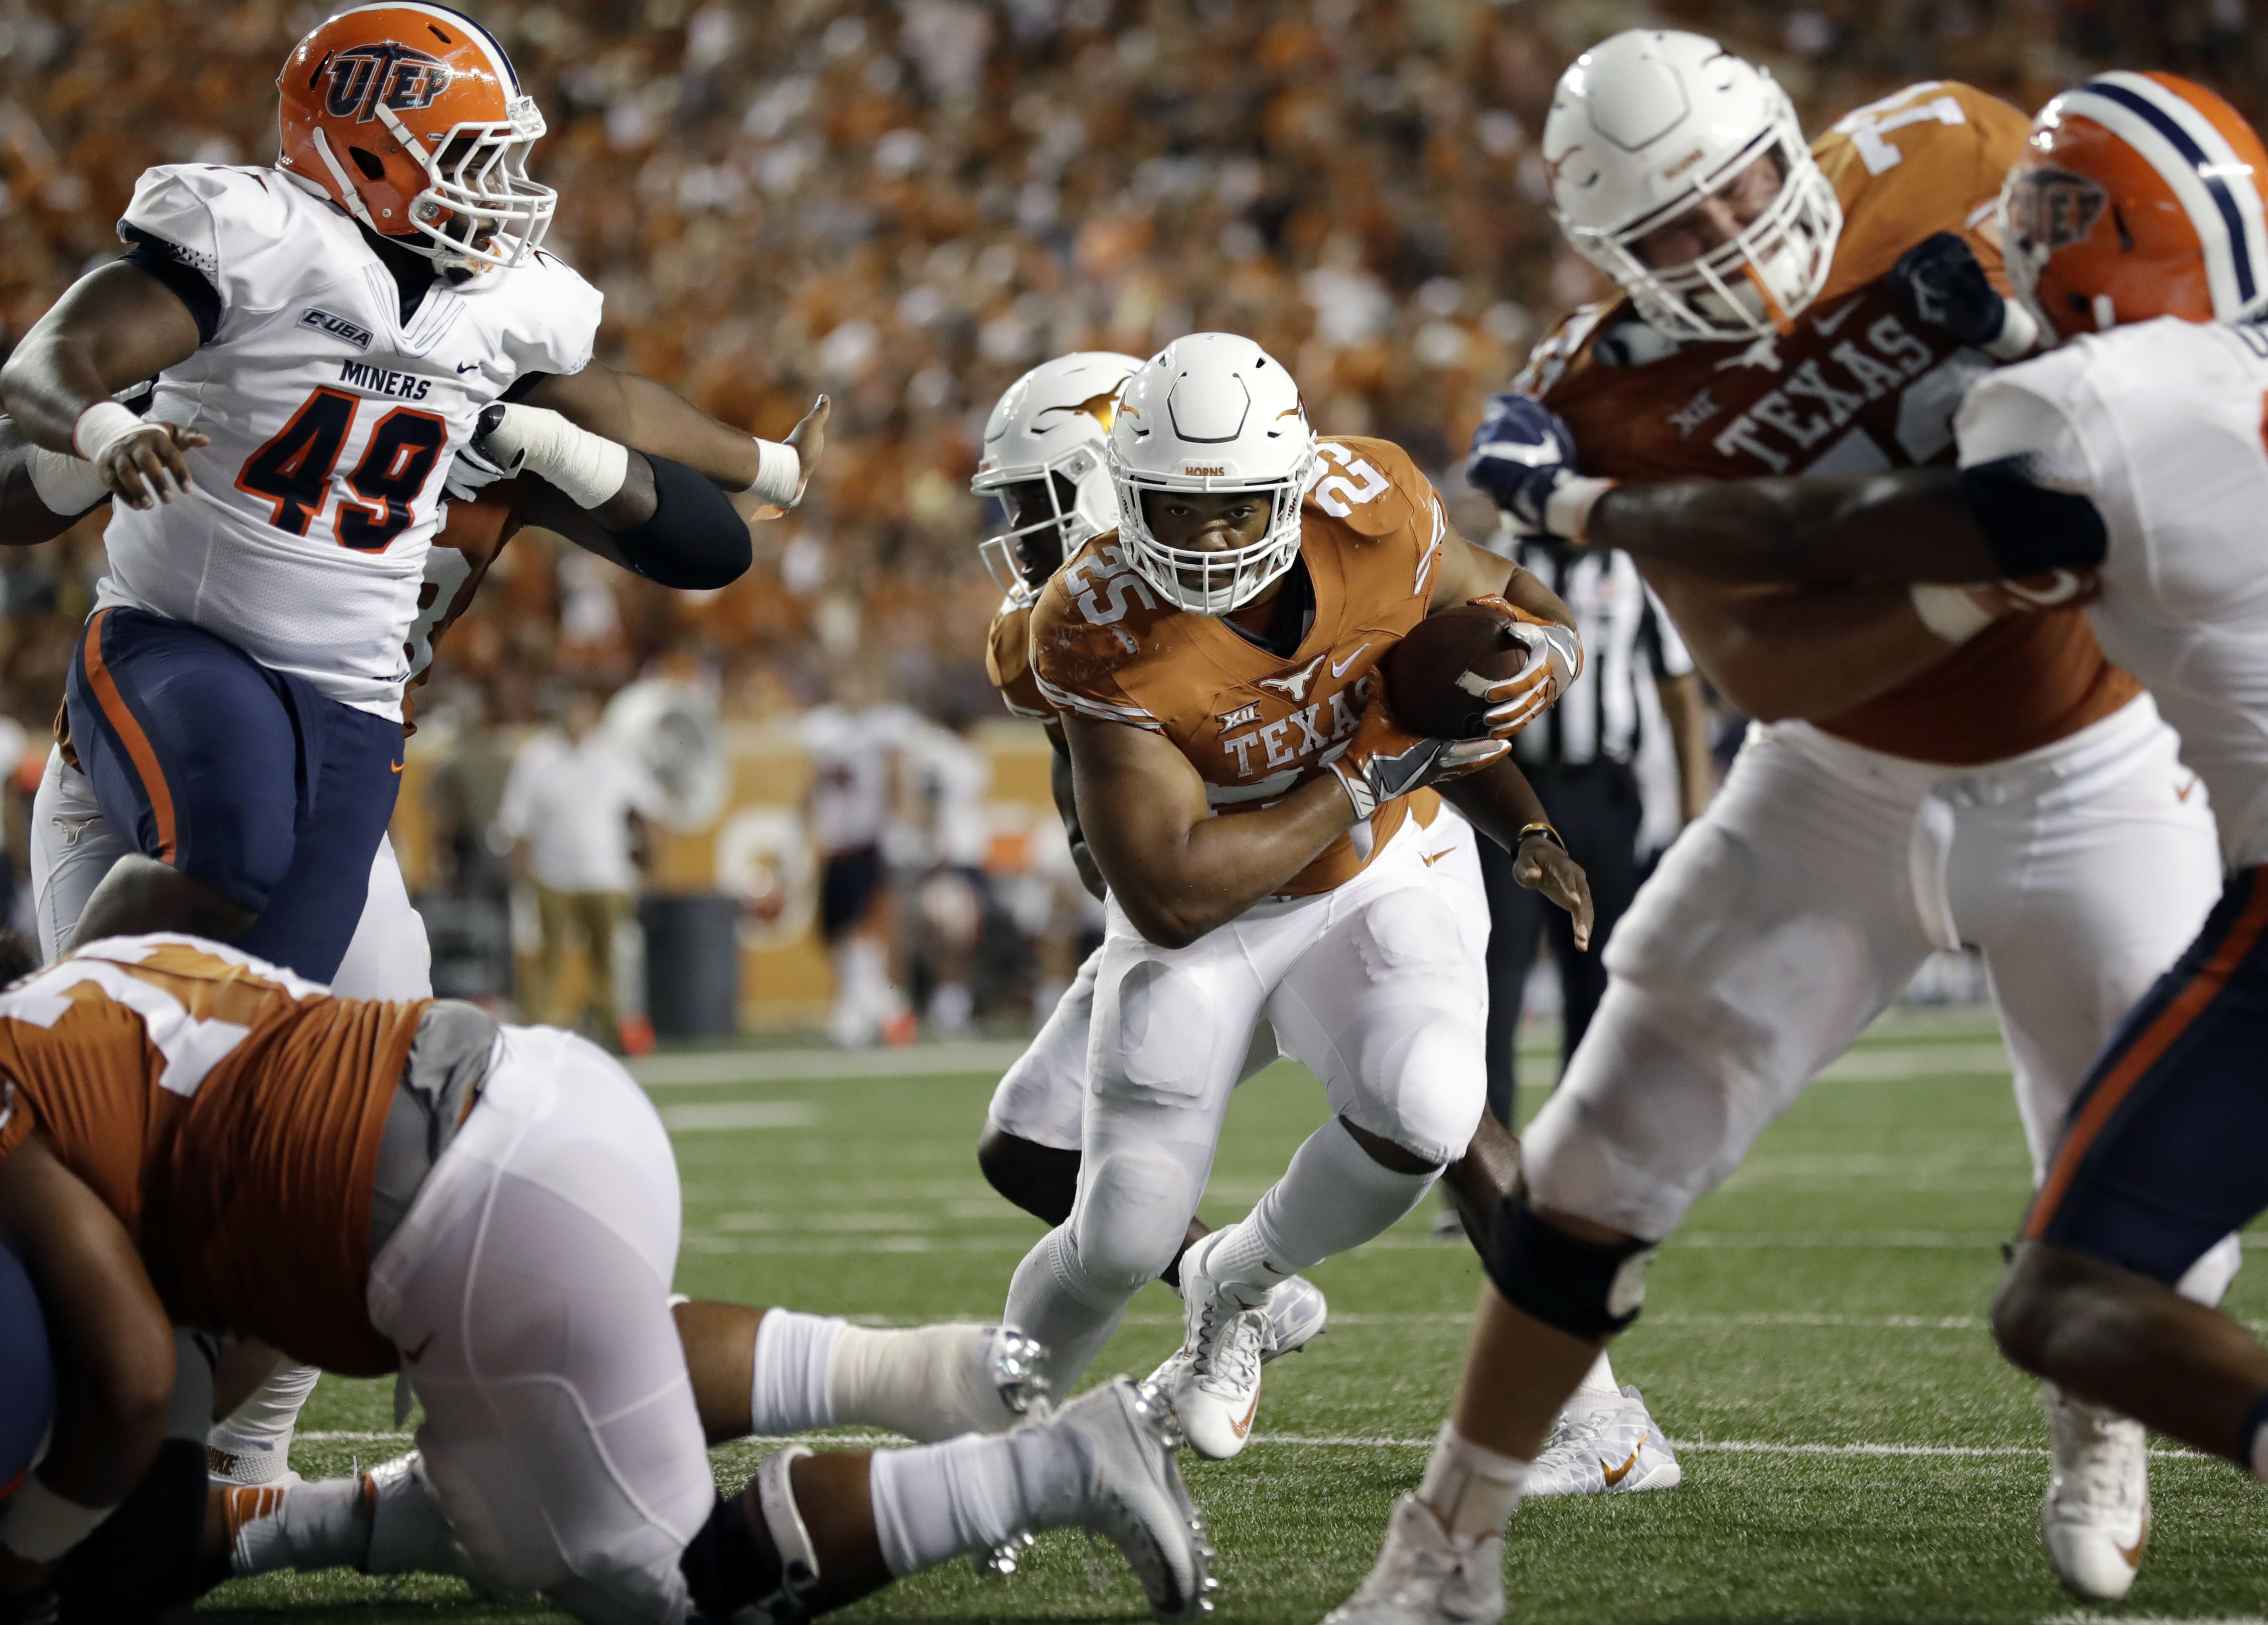 Texas running back Chris Warren III (25) rushes for a touchdown against UTEP during the second half of a NCAA college football game, Saturday, Sept. 10, 2016, in Austin. (AP Photo/Eric Gay)